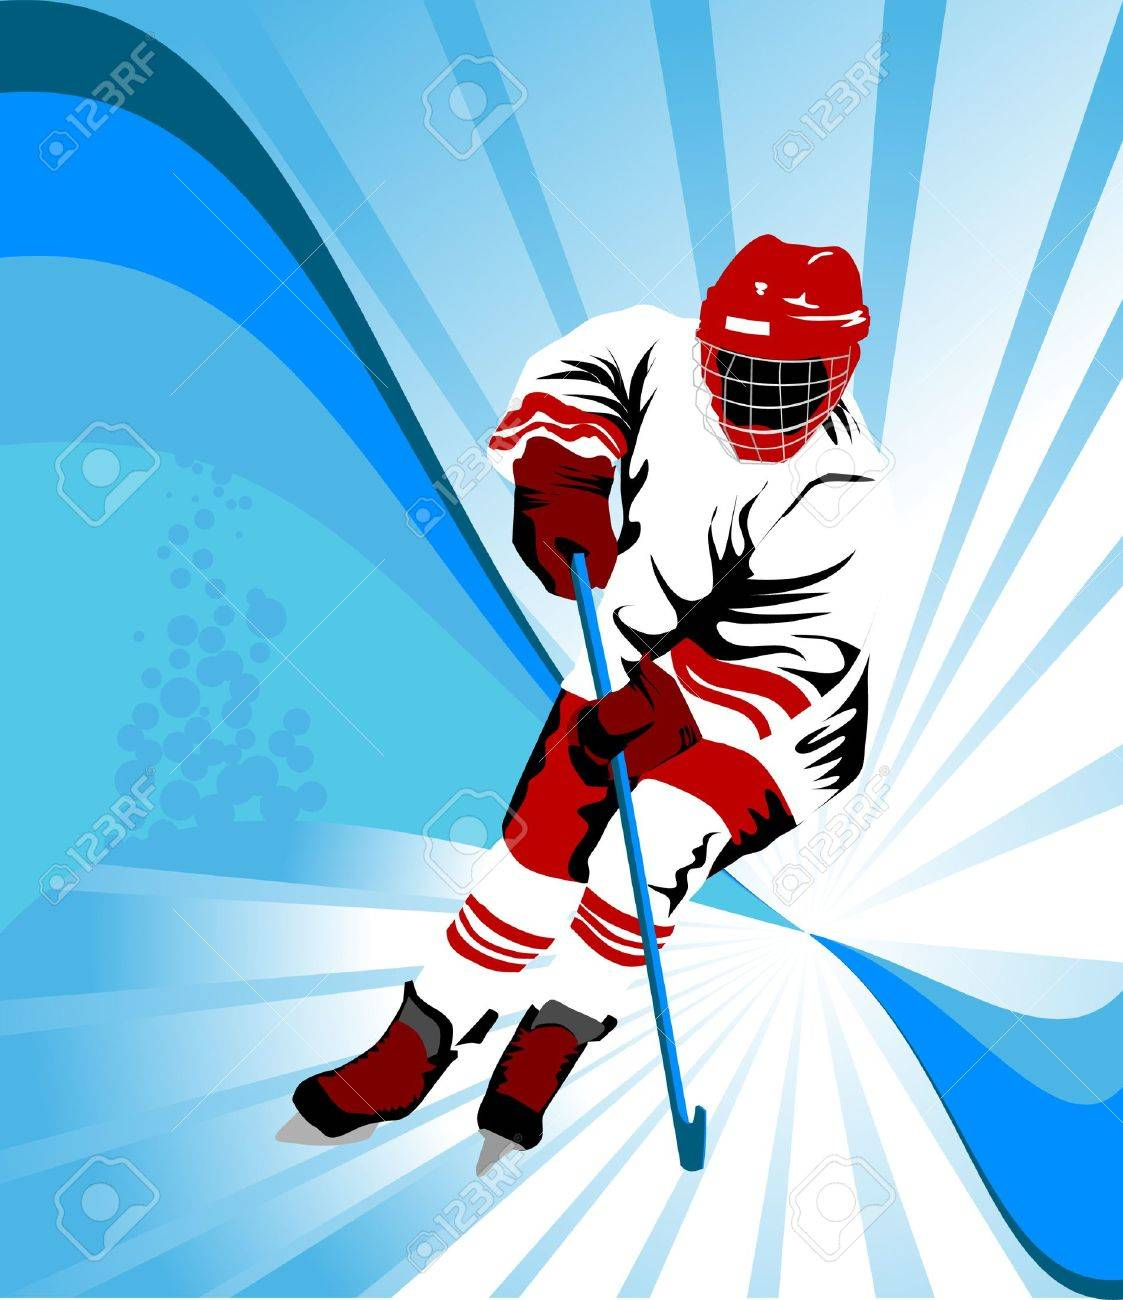 Hockey player makes a strong shot on goal rival; Stock Vector - 7664290